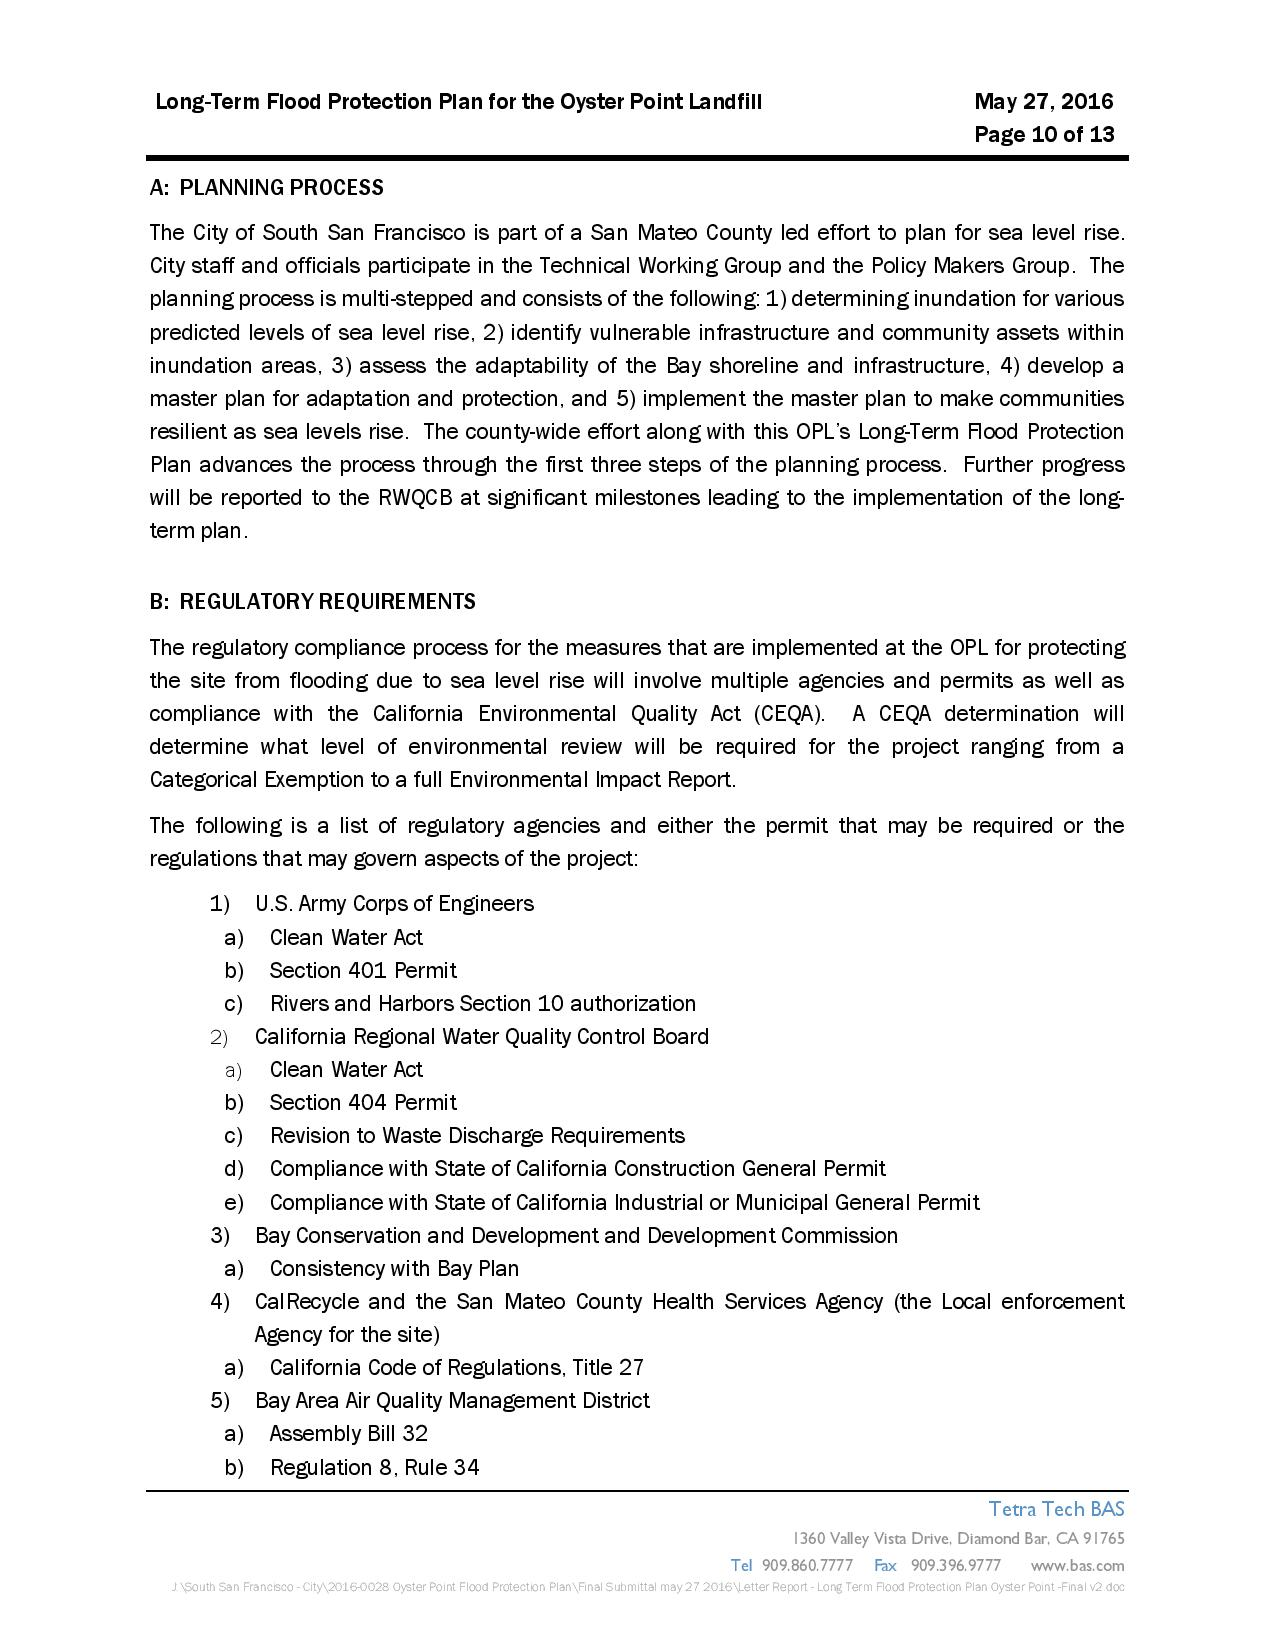 City of SSF Oyster Pt. Landfill Long-Term Flood Protection Letter & Plan-2-page-012